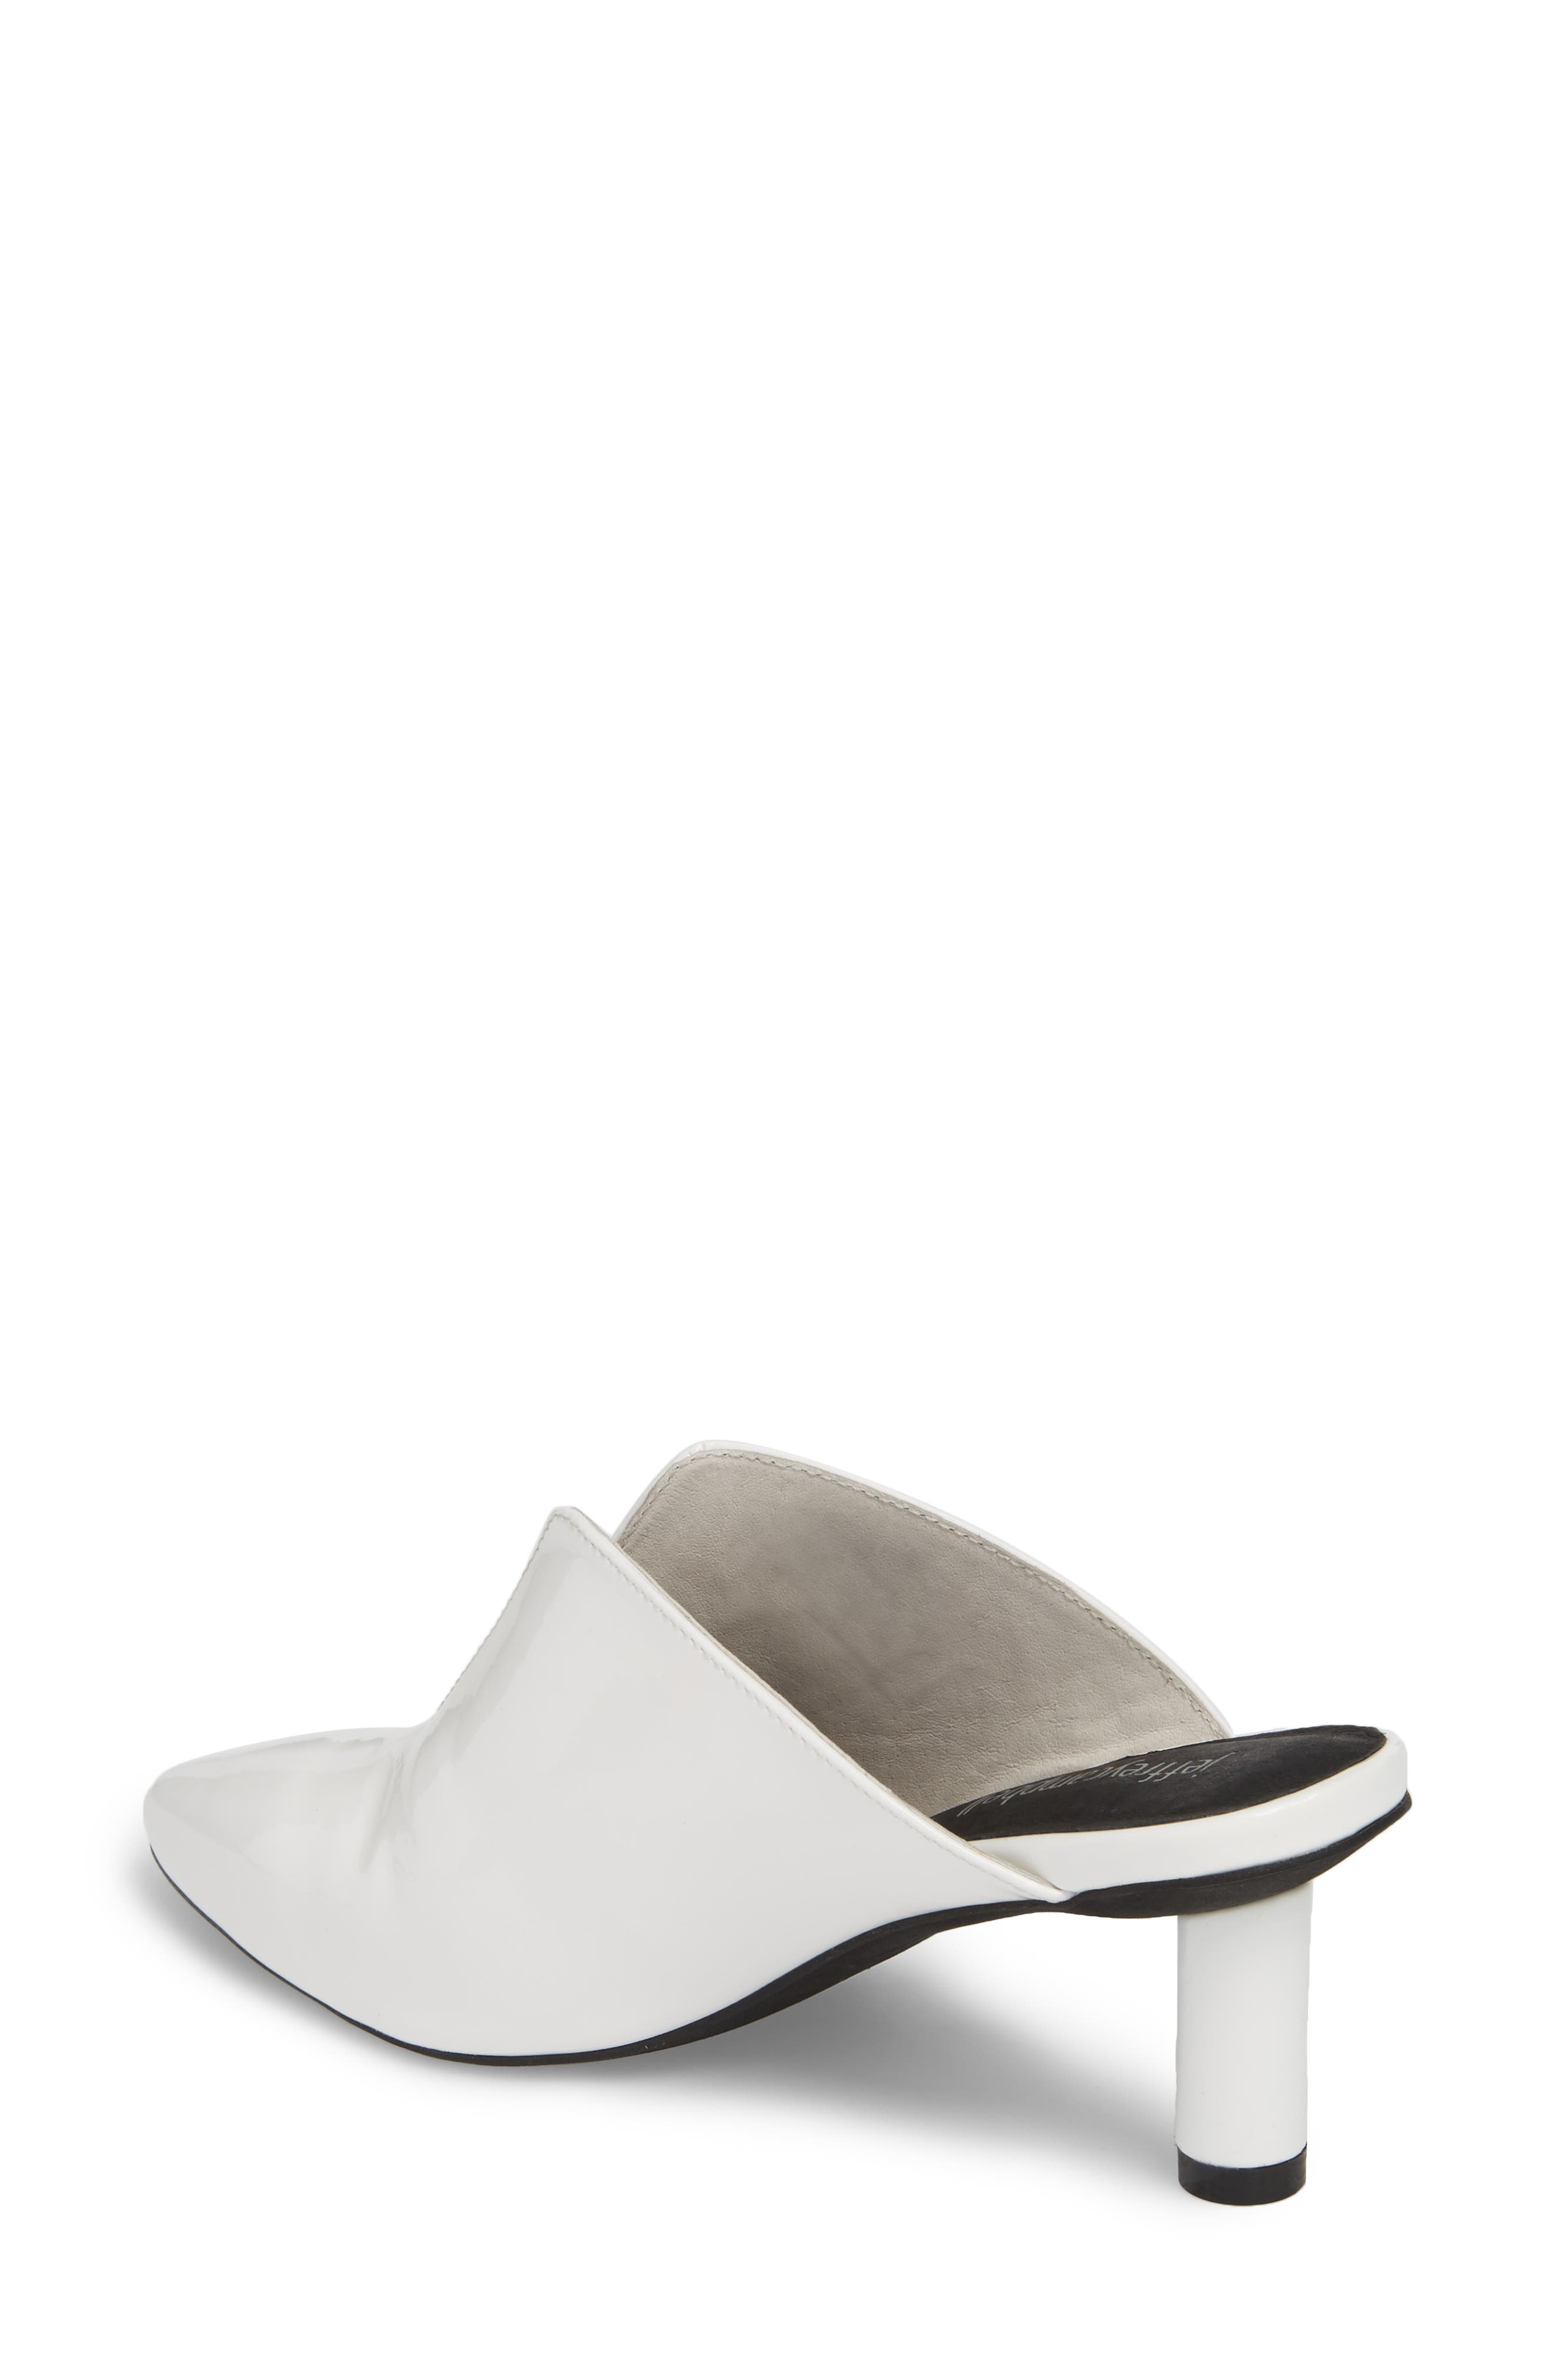 Saltaire Pointy Toe Mule,                             Alternate thumbnail 2, color,                             White Patent Leather